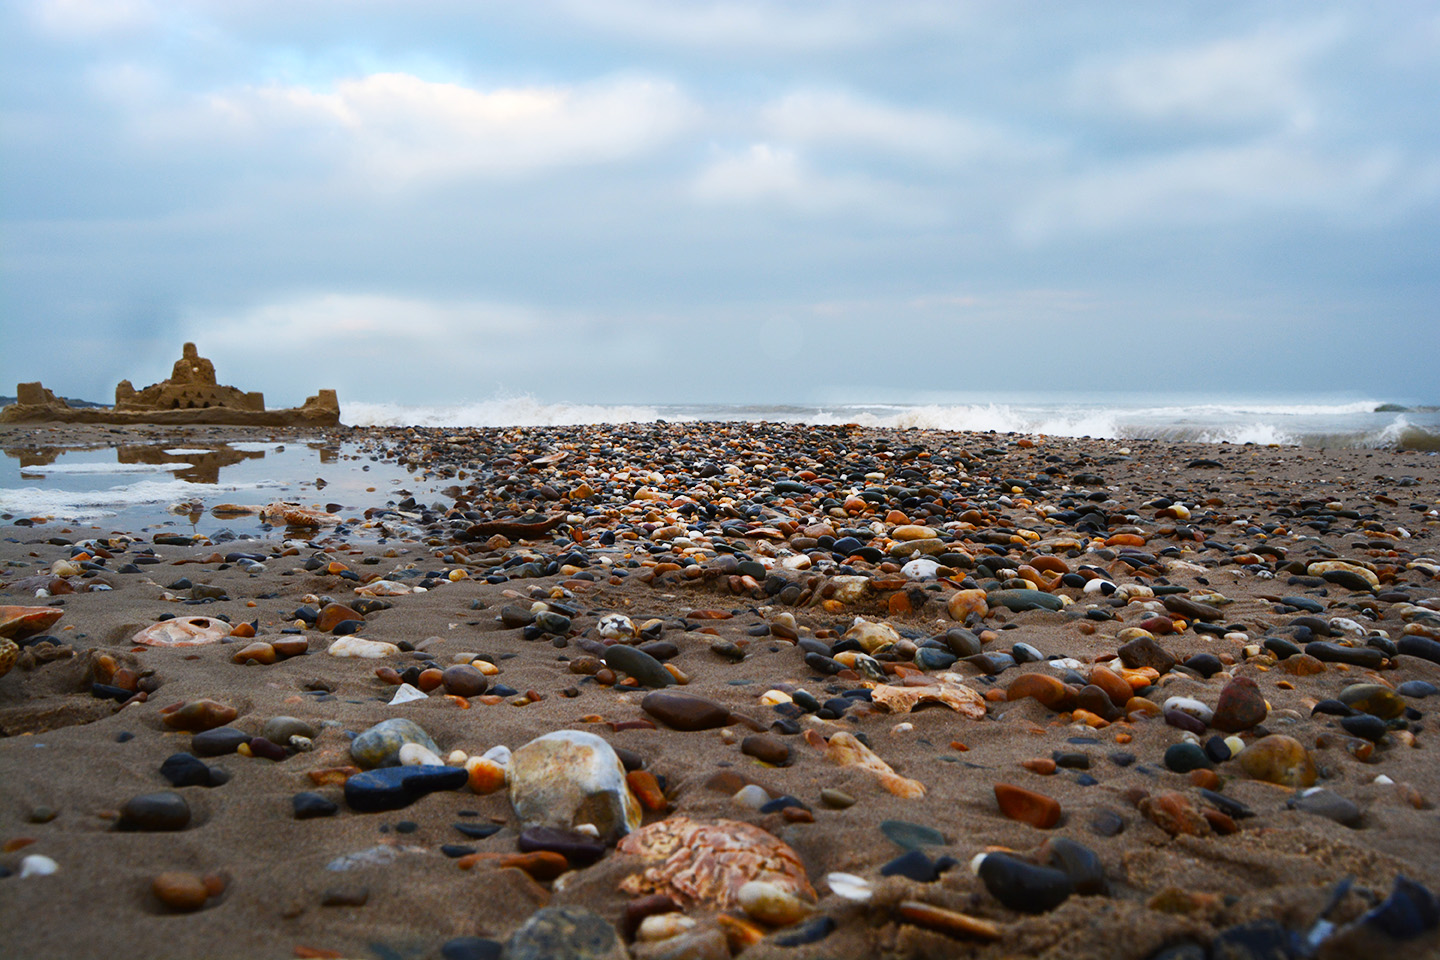 Another view of the Irish Sea. Yes, I did take a whole bunch of rocks home because I'm that person.